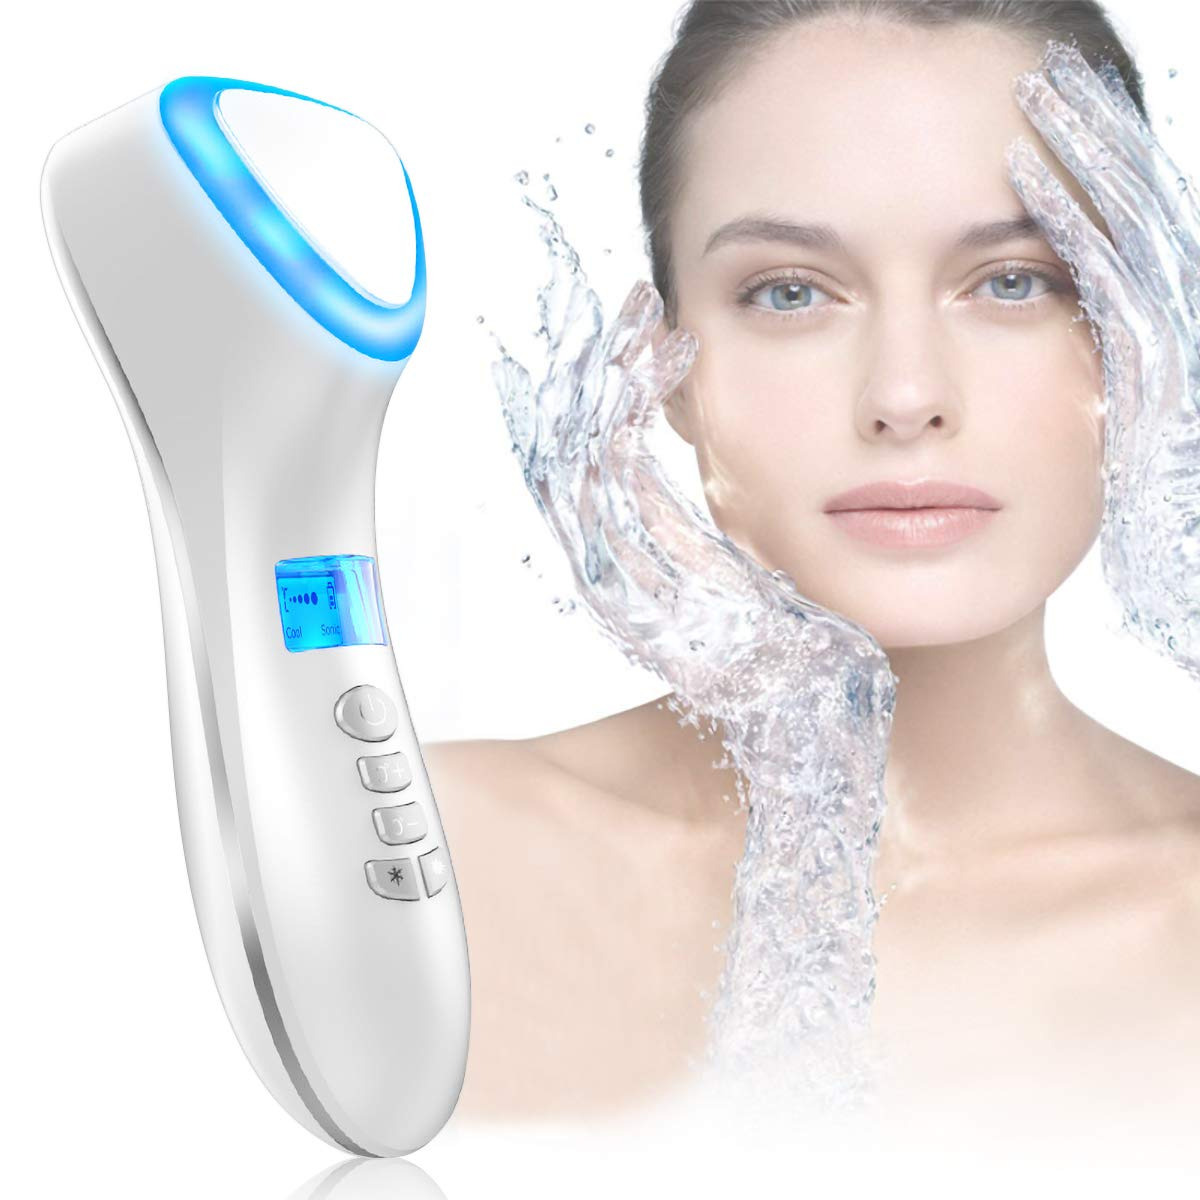 Facial Massager,Hot and Cool Skin Care Device, Portable Handheld Vibration Face Care Beauty Device,Skin Calm,Anti-Wrinkle,Promote Cream and Absorption(White) by Elgary